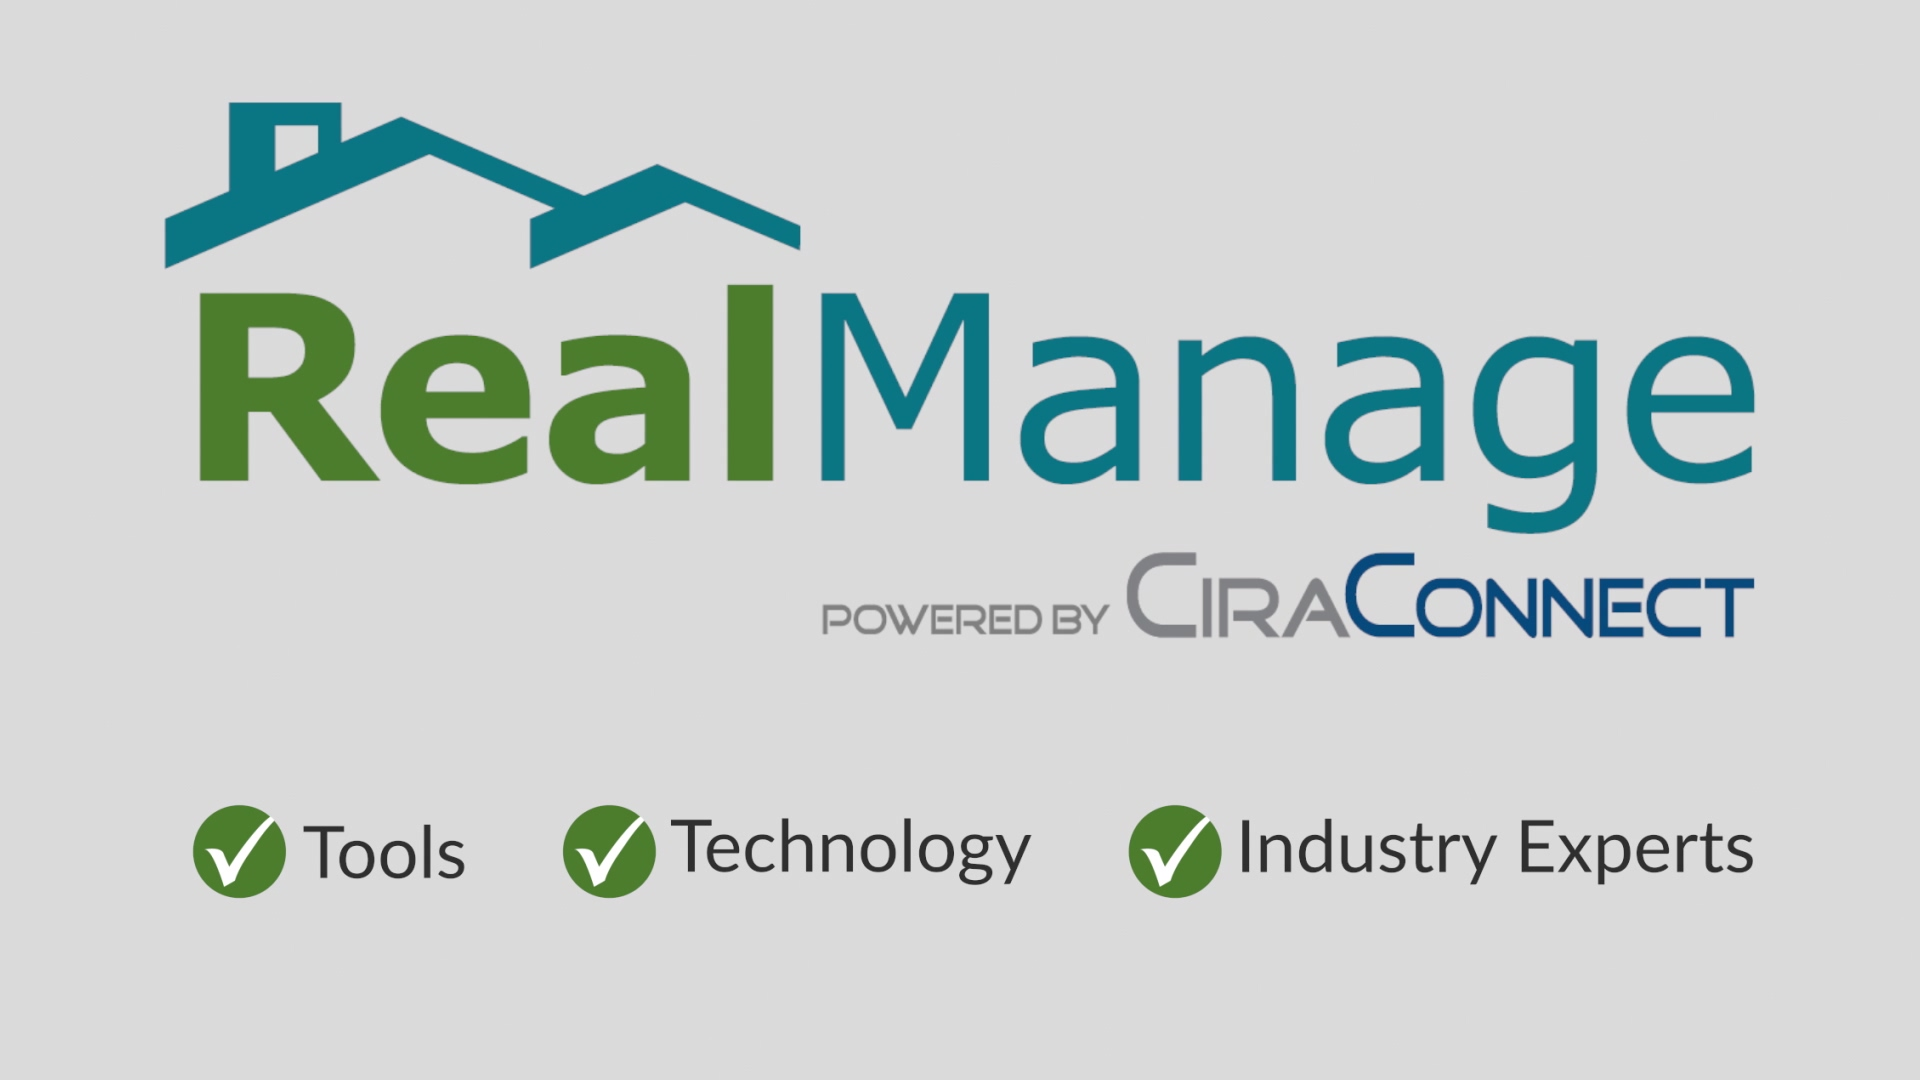 RealManage Services